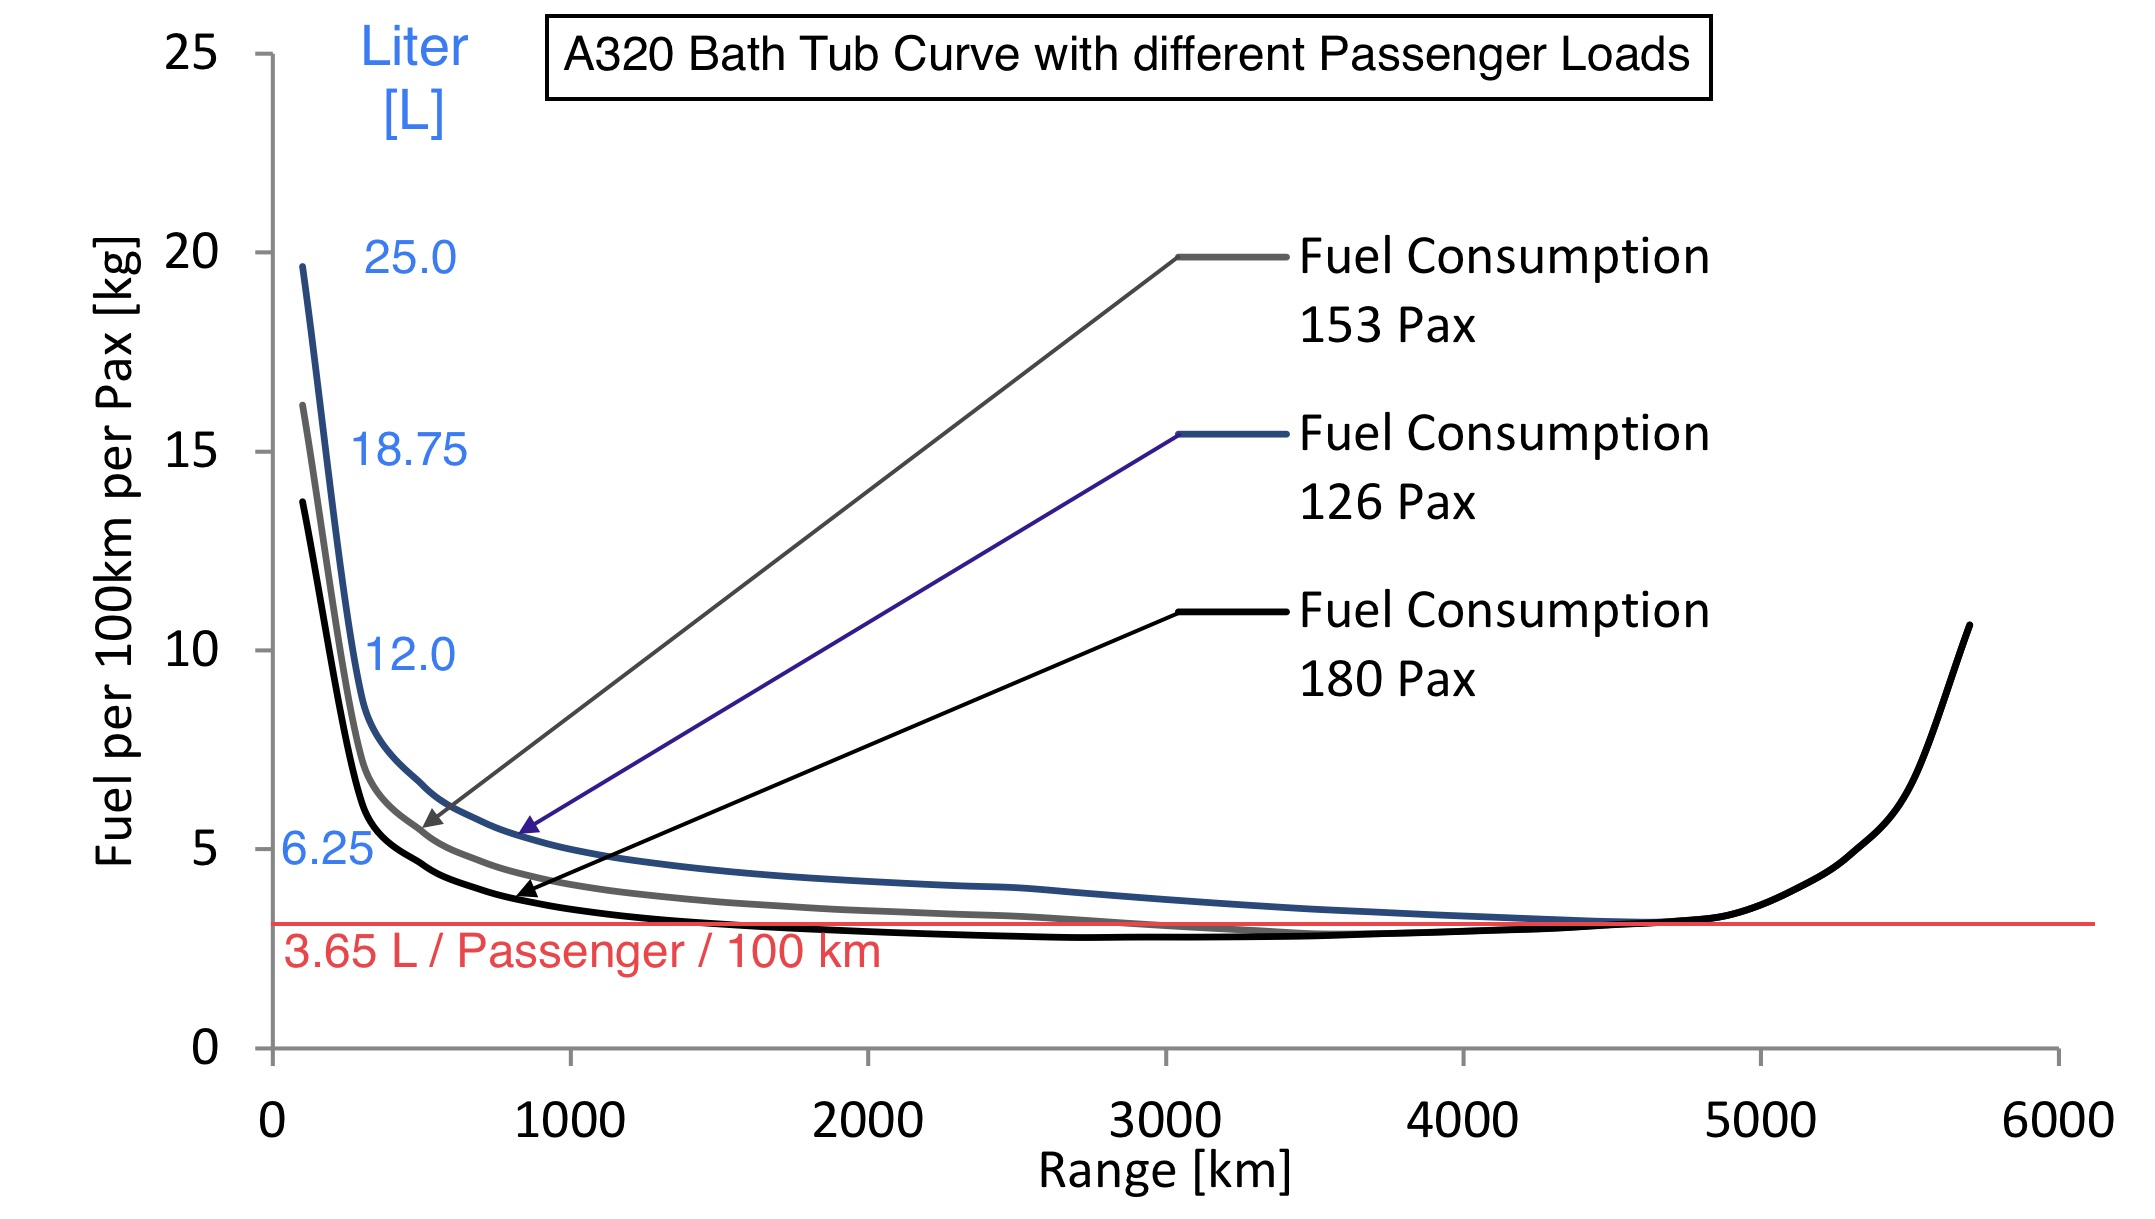 Bath Tub Curve A320 with different Passenger Loads